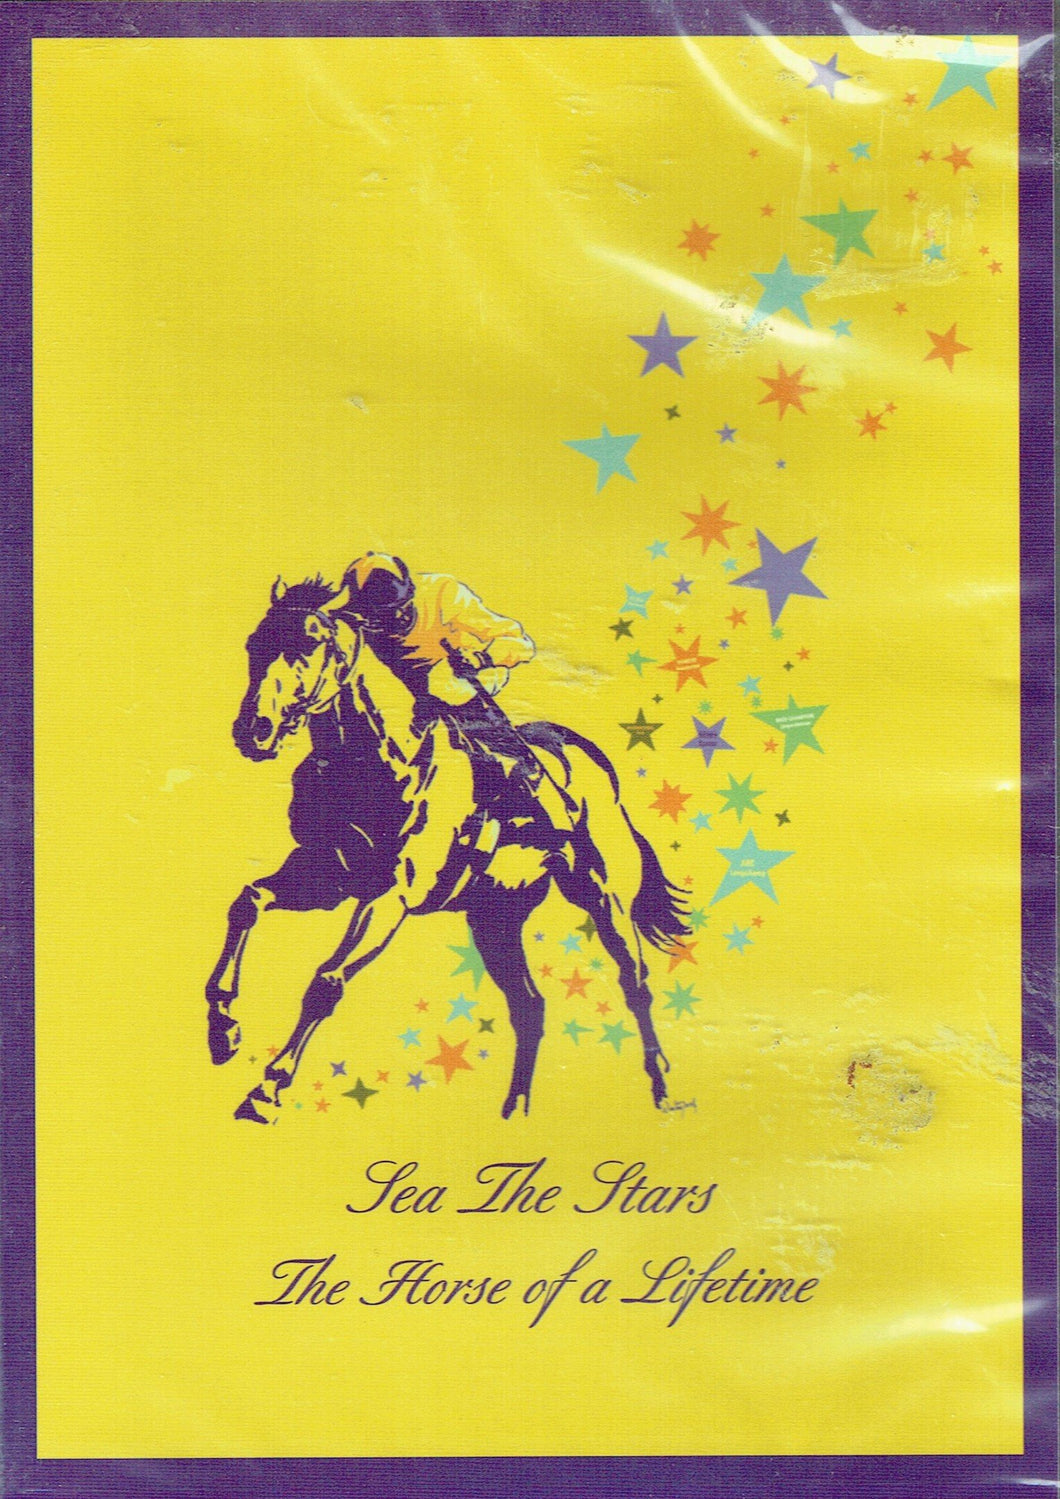 Sea the Stars: The Horse of a Lifetime